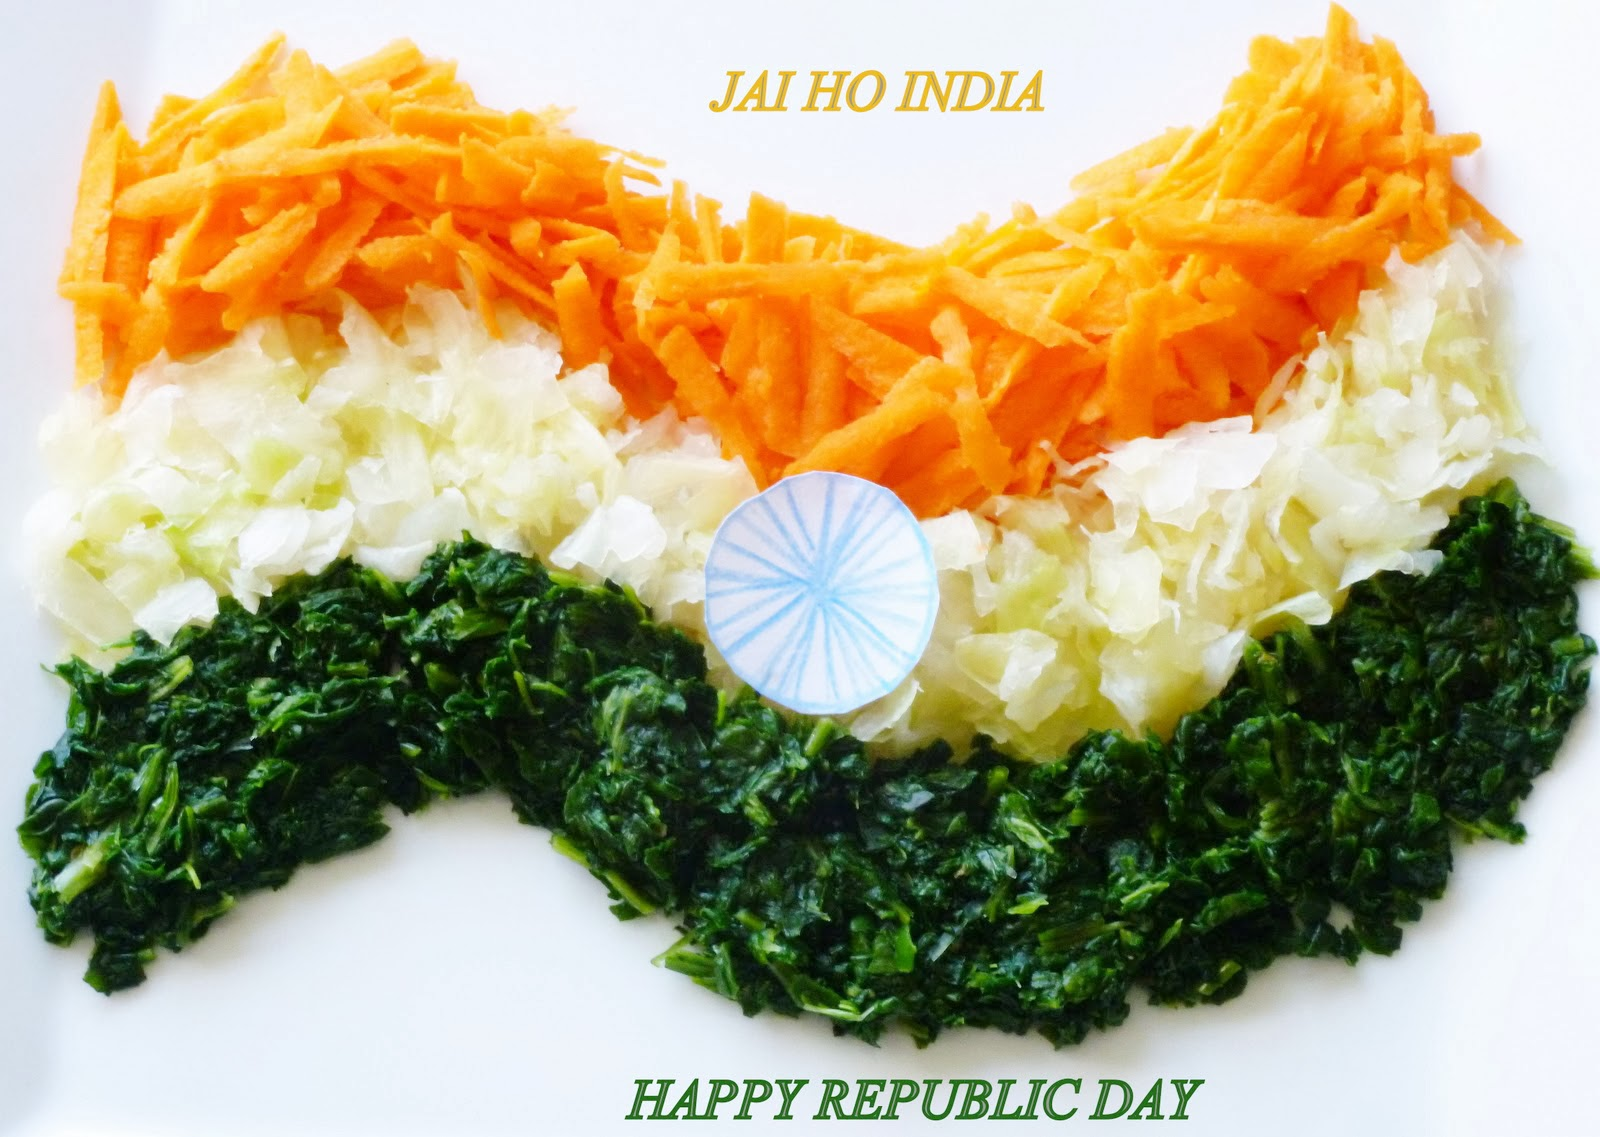 26 jan 2014 Creative Indian Flag Republic Day Special Wallpaper images photos pics